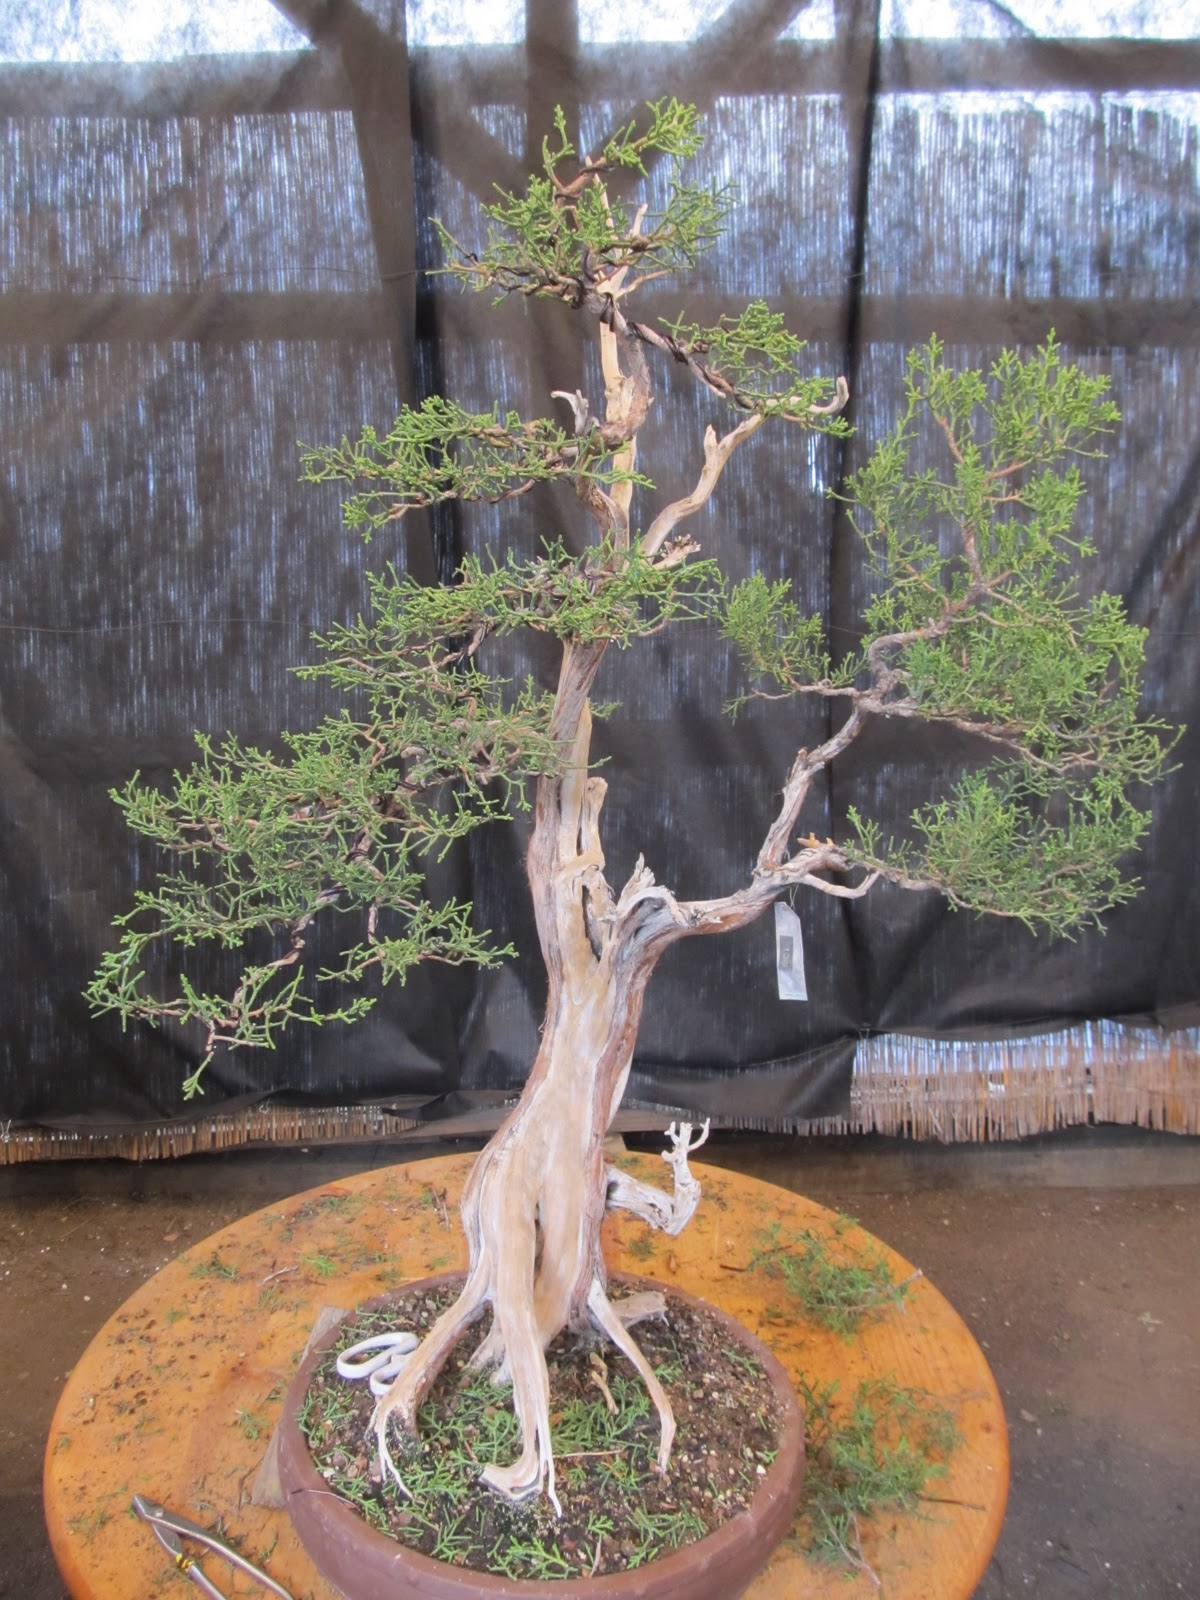 Bonsaibp39s Bonsai Blog California Juniper Refinements